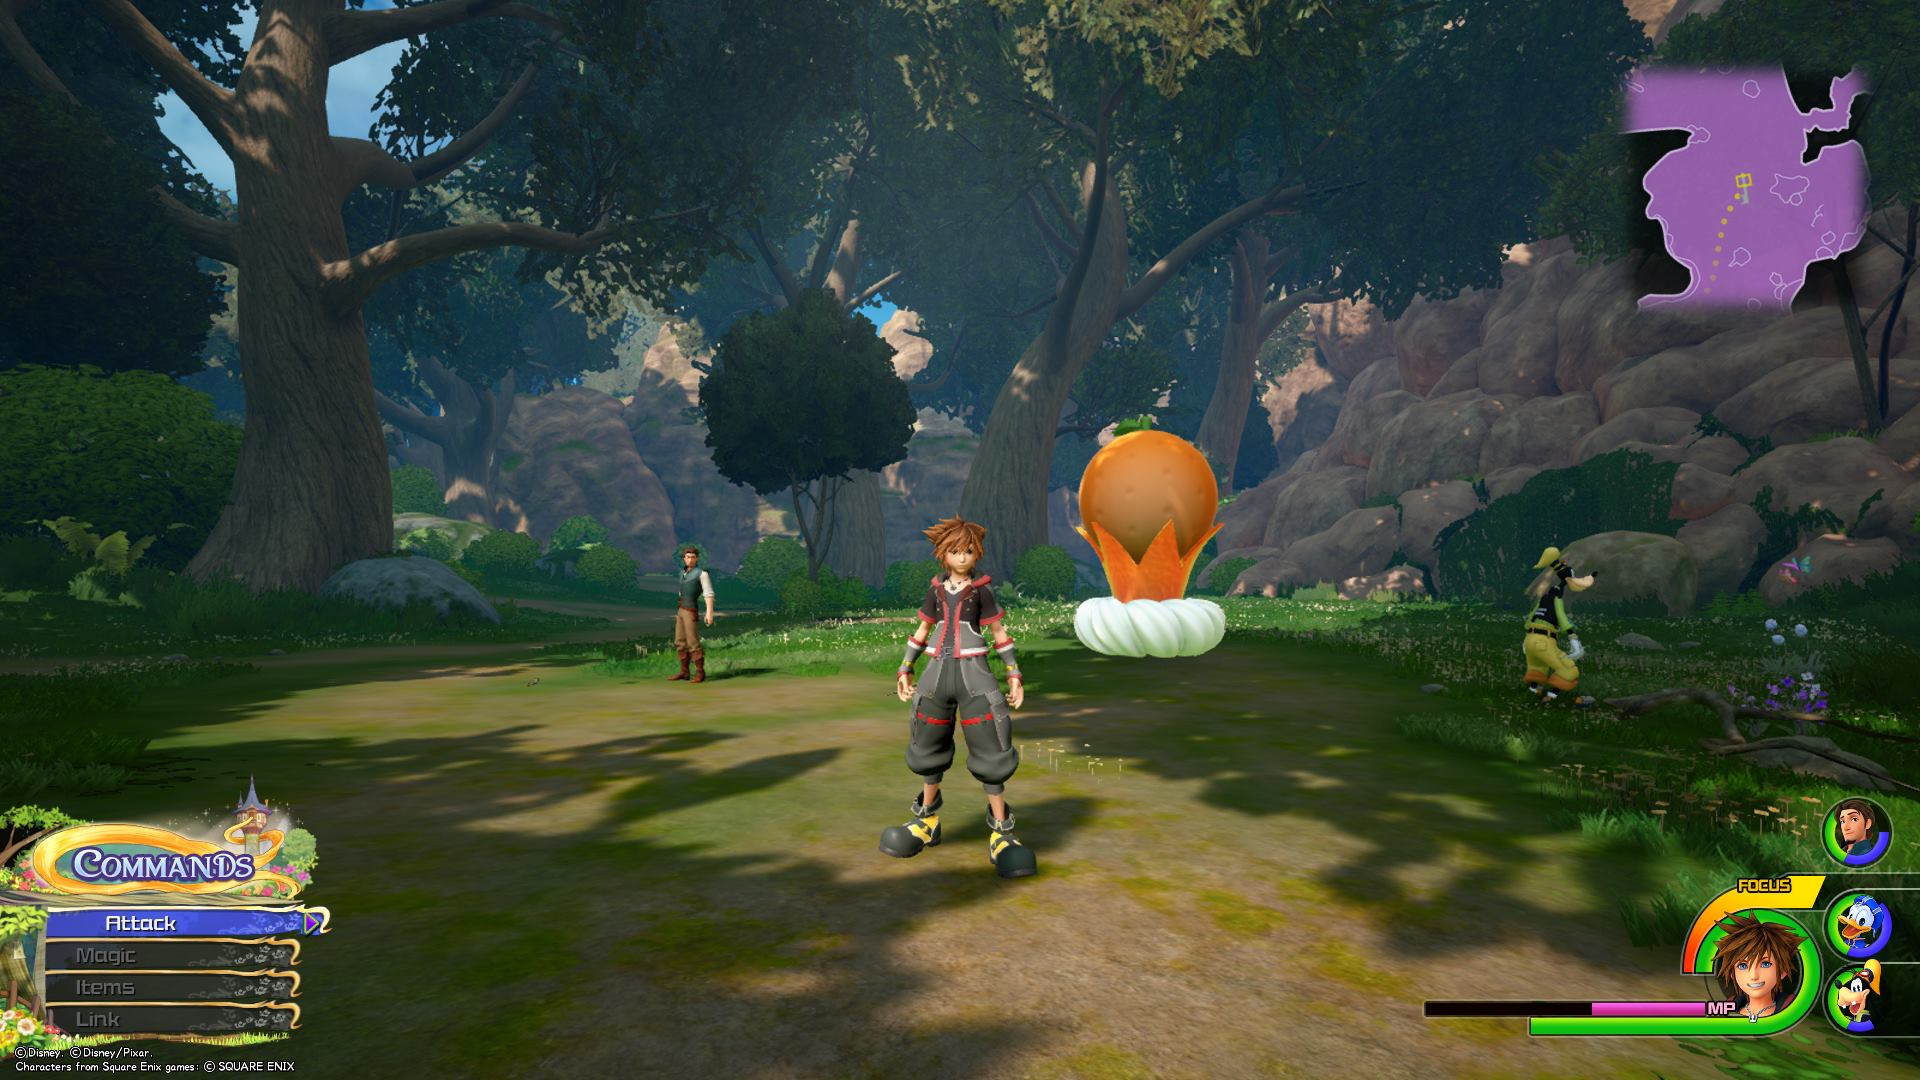 The third Flantastic Seven member can be found in the Hills area of the Forest in the Kingdom of Corona world of Kingdom Hearts 3.